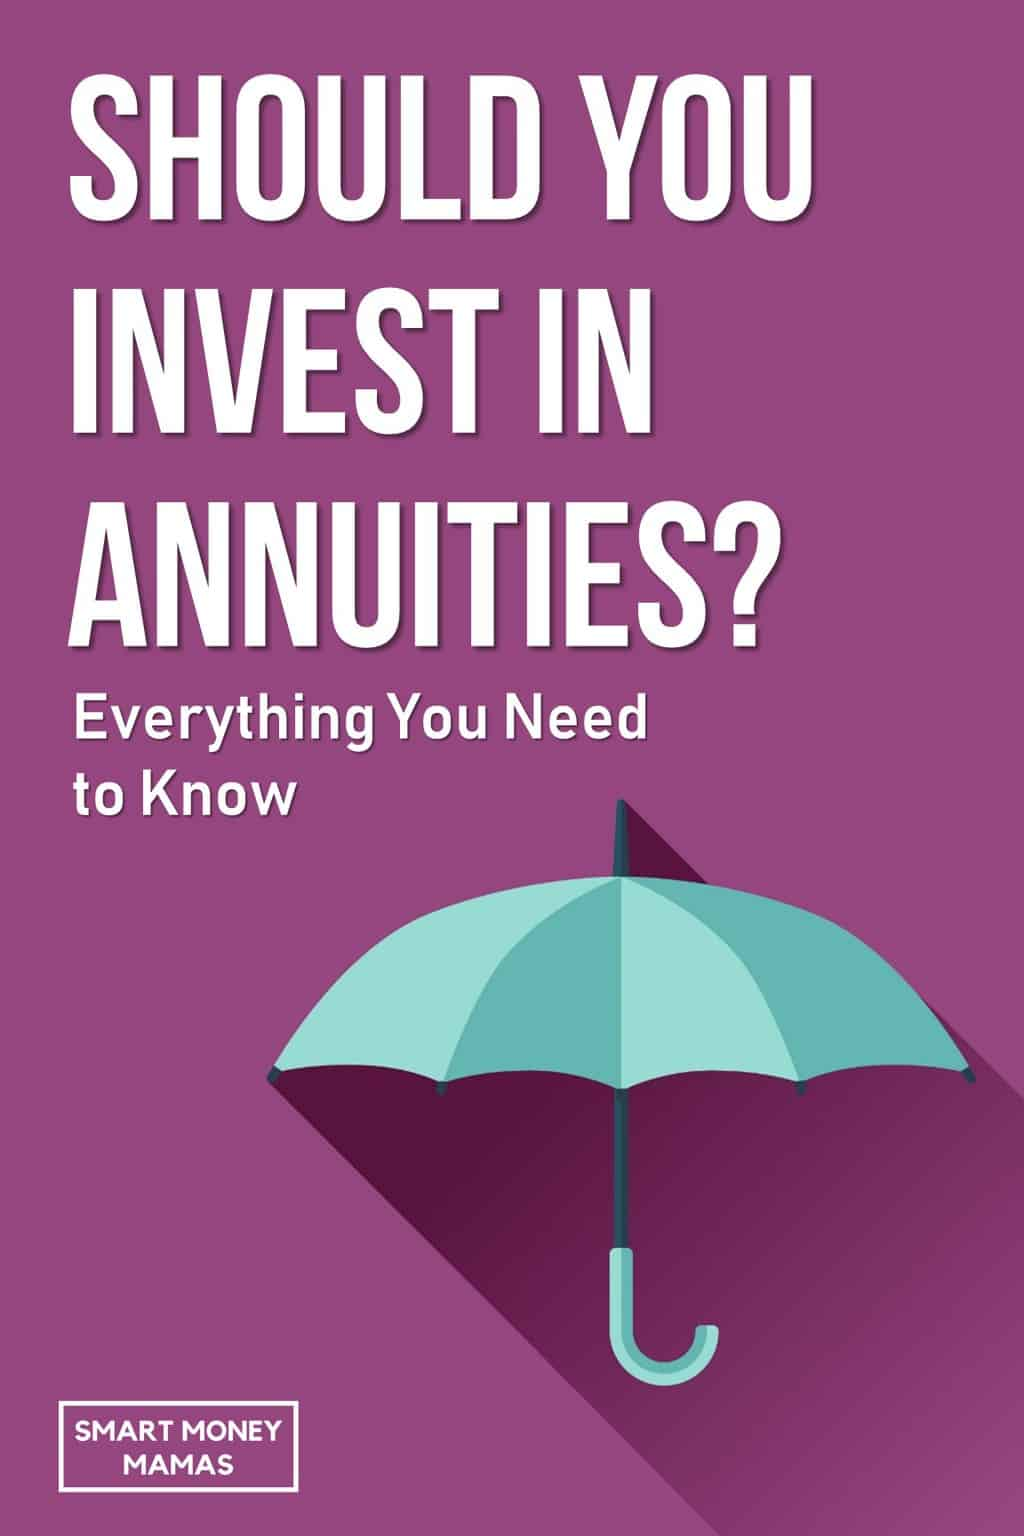 They offer annuities in my retirement account but I\'ve never known what they were! This was so helpful and now I can choose my investments without being confusing. I didn\'t know the fees were so high! #retirementplanning #annuities #investing #savingmoney #smartmoneymamas